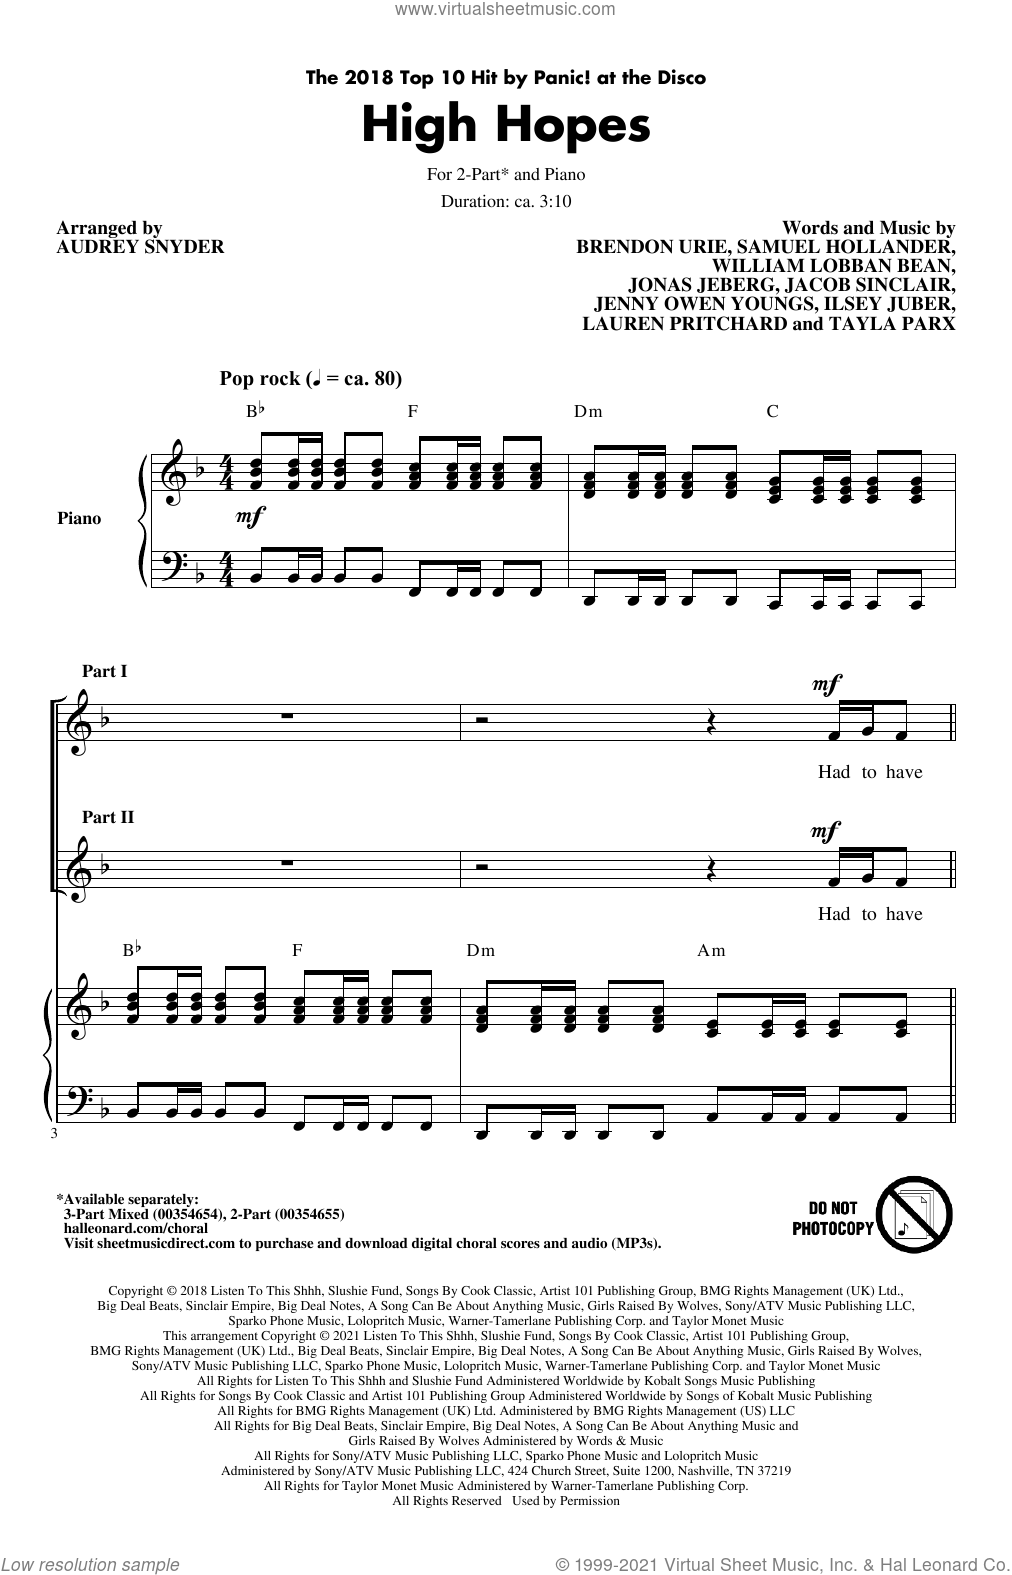 High Hopes (arr. Audrey Snyder) sheet music for choir (2-Part) by Panic! At The Disco, Audrey Snyder, Brendon Urie, Ilsey Juber, Jacob Sinclair, Jenny Owen Youngs, Jonas Jeberg, Lauren Pritchard, Sam Hollander, Tayla Parx and William Lobban Bean, intermediate duet